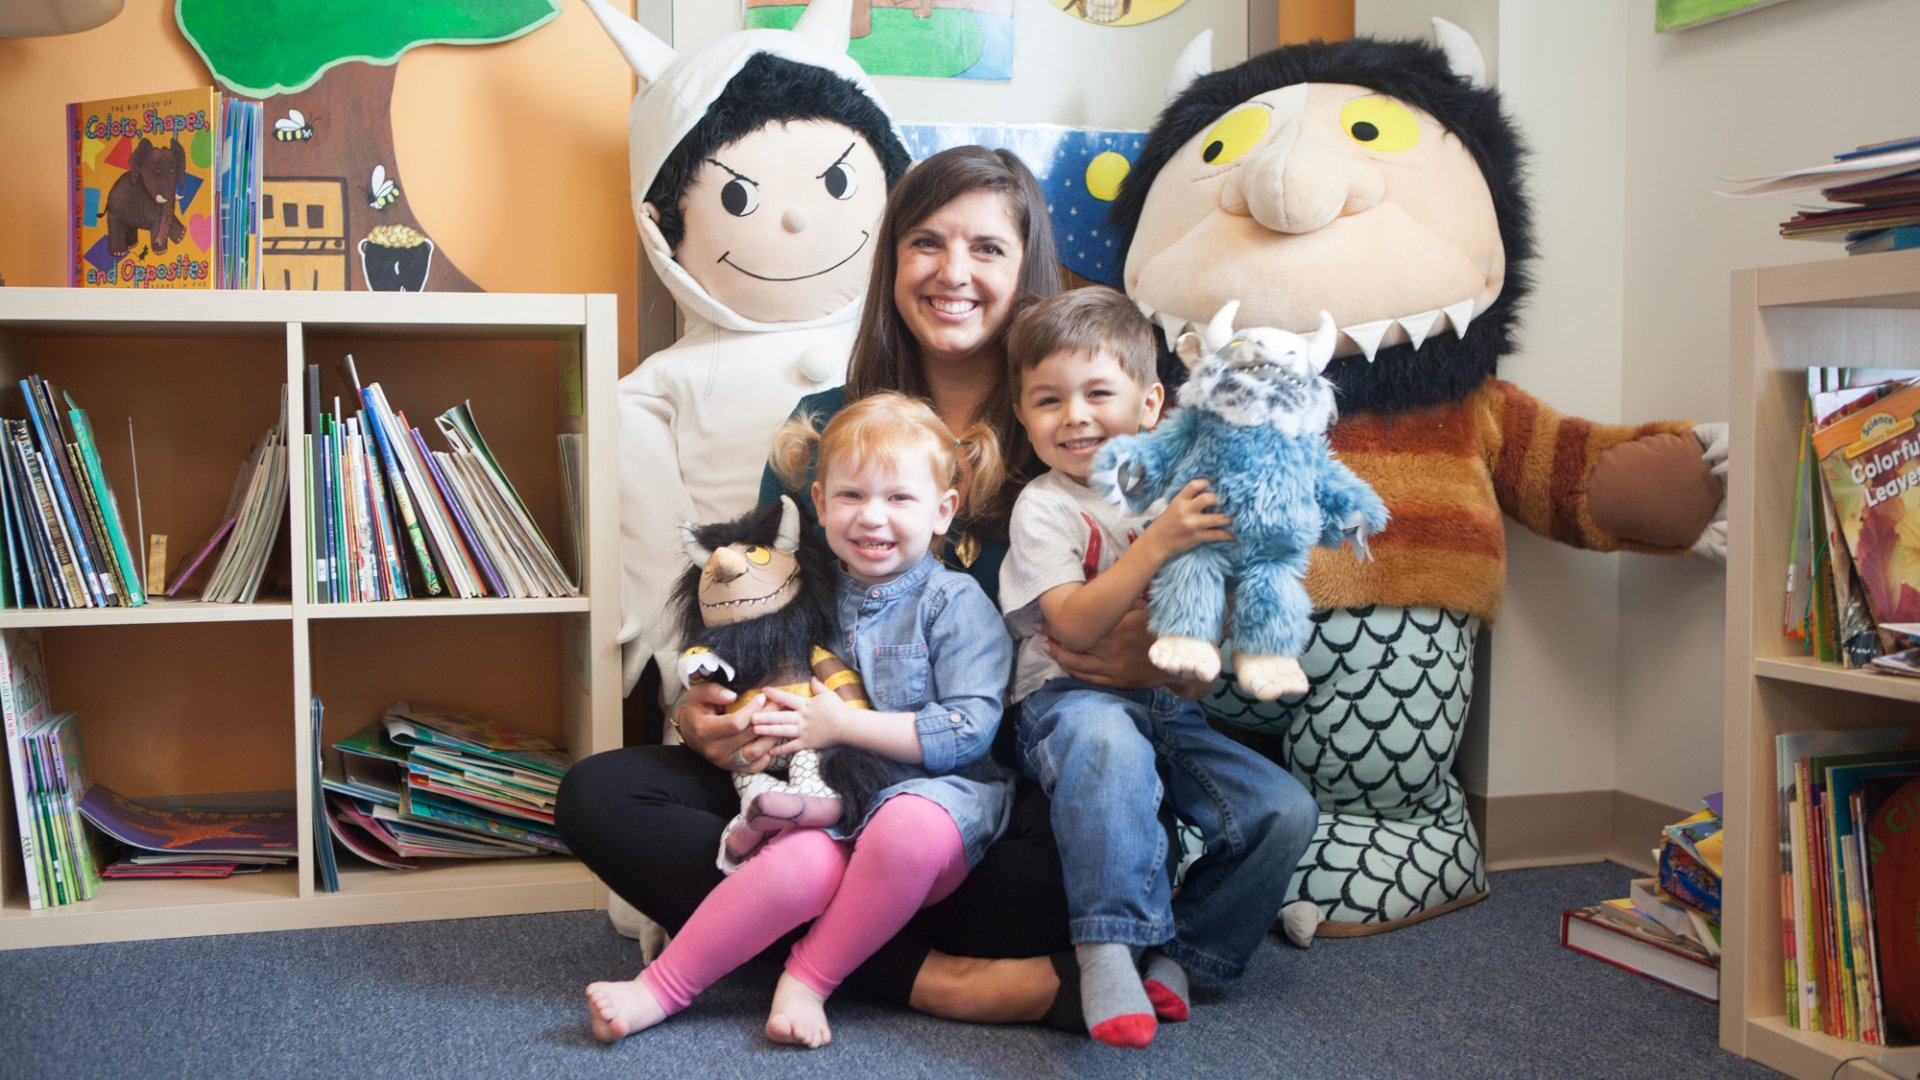 Melissa Page Peter is the founder of Mi Casita, a Spanish-immersion preschool where kids acquire the language through hands-on, project-based learning.